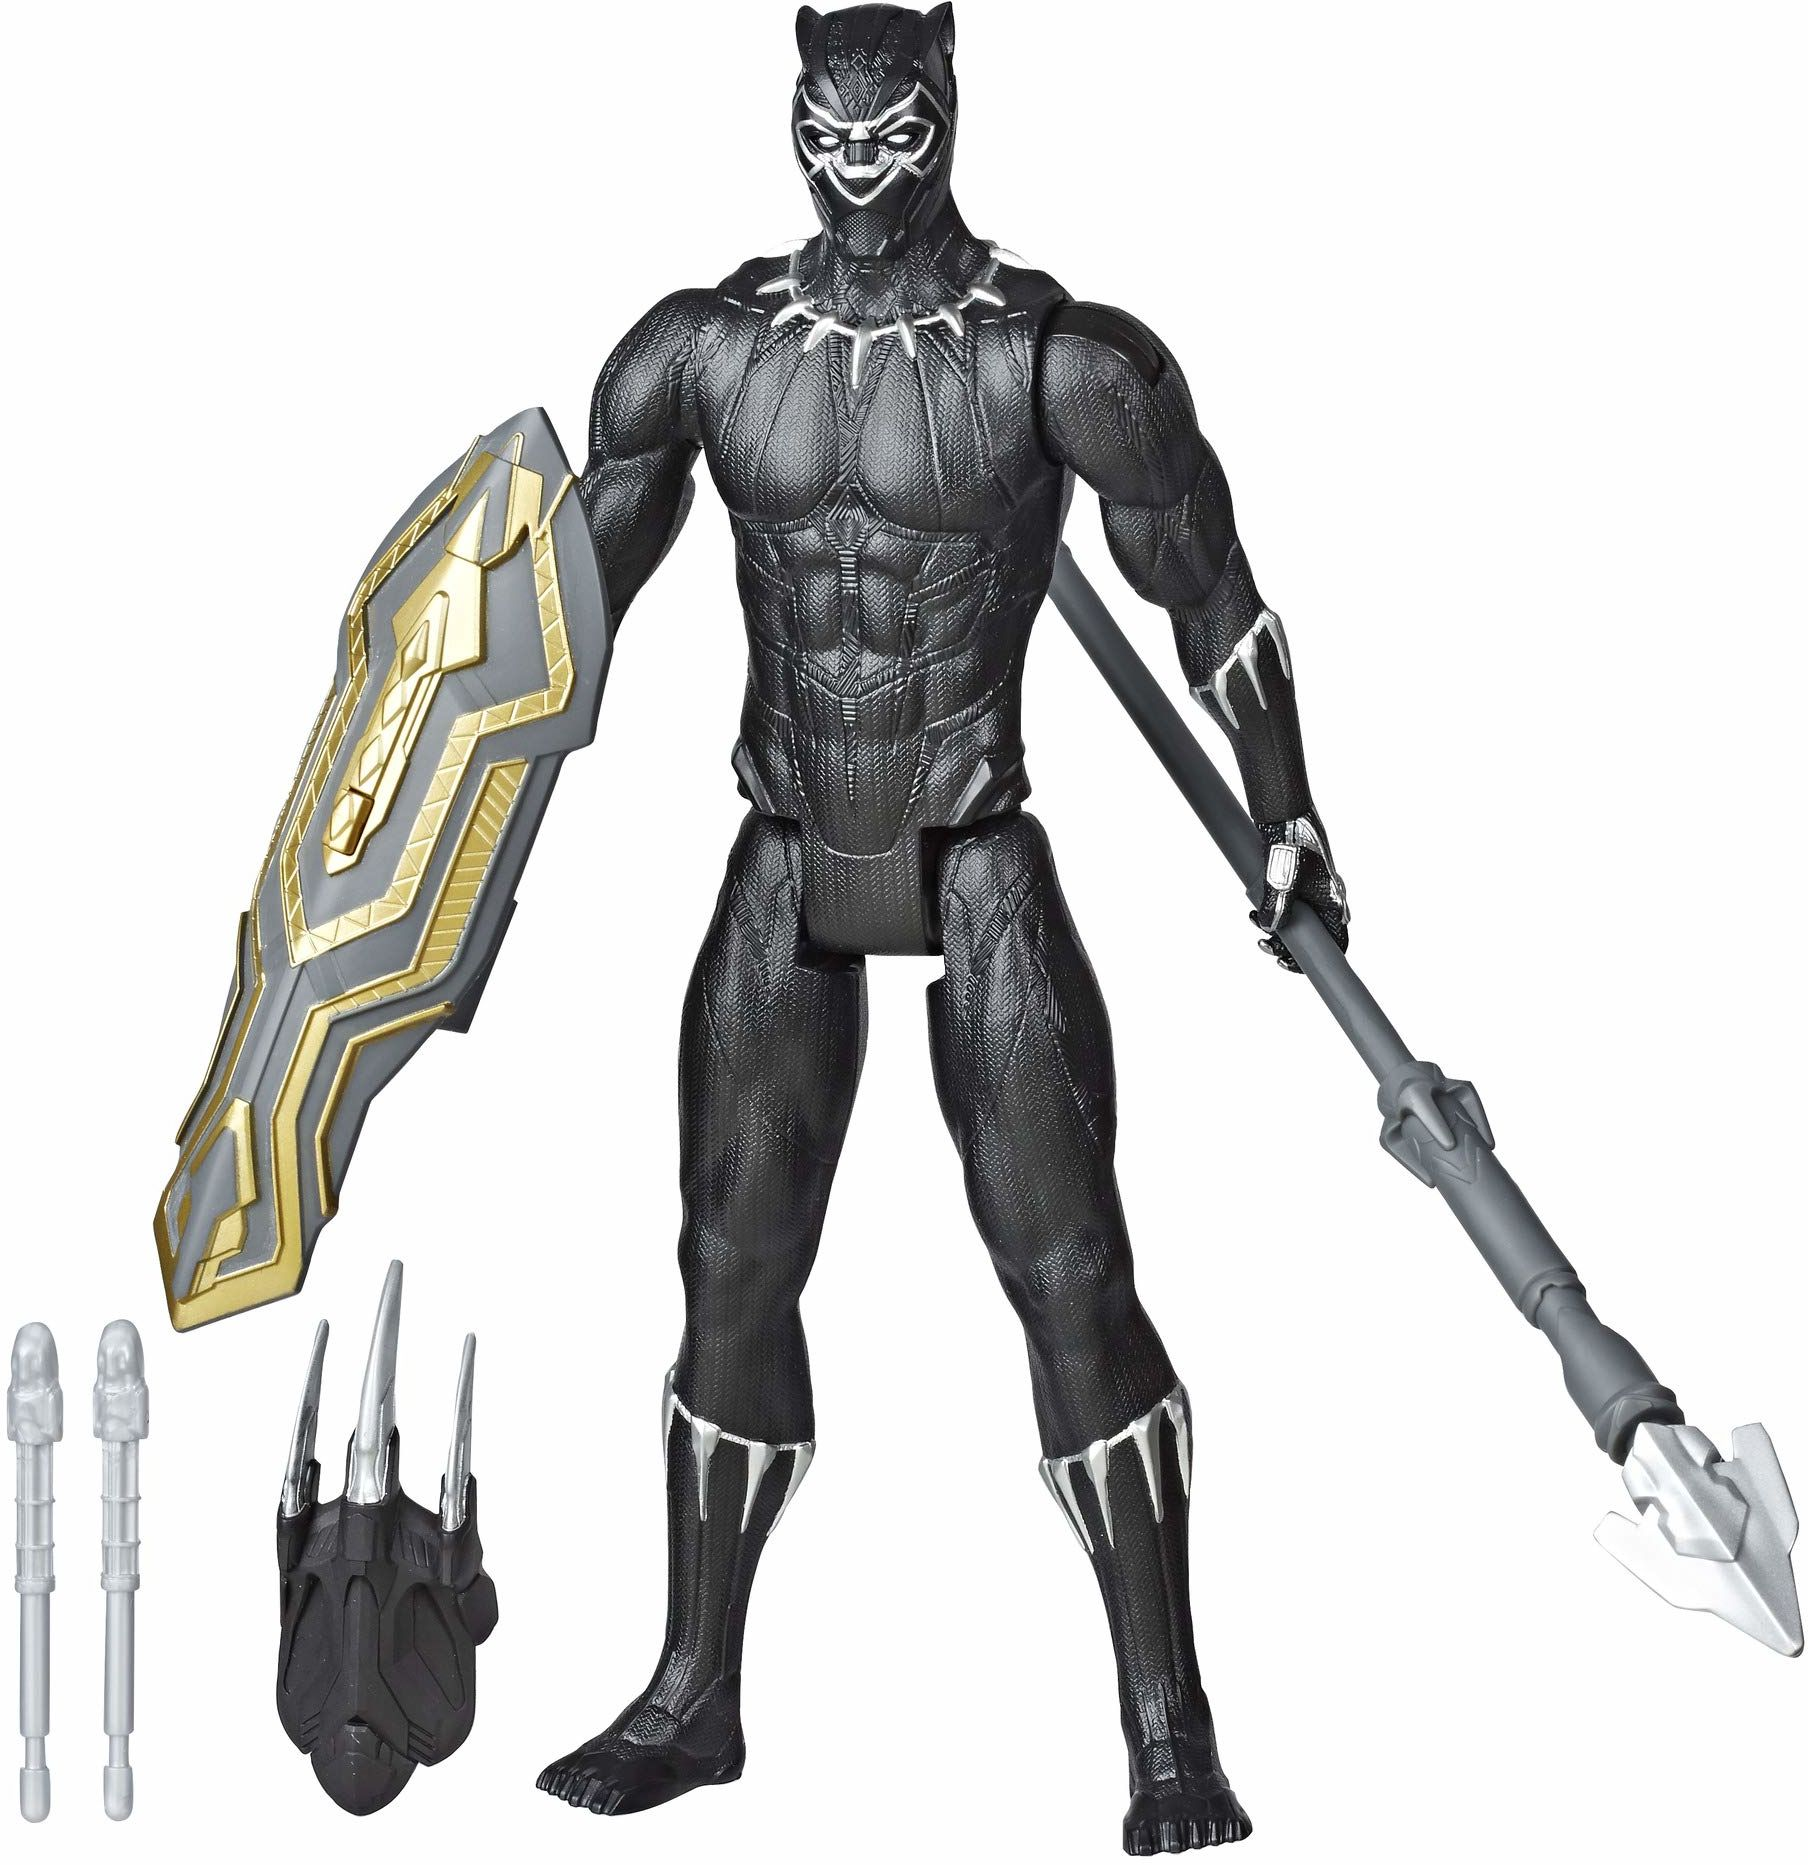 Marvel Avengers Titan Hero Series Black Panther Action Figure (12 inches, Multicolor)